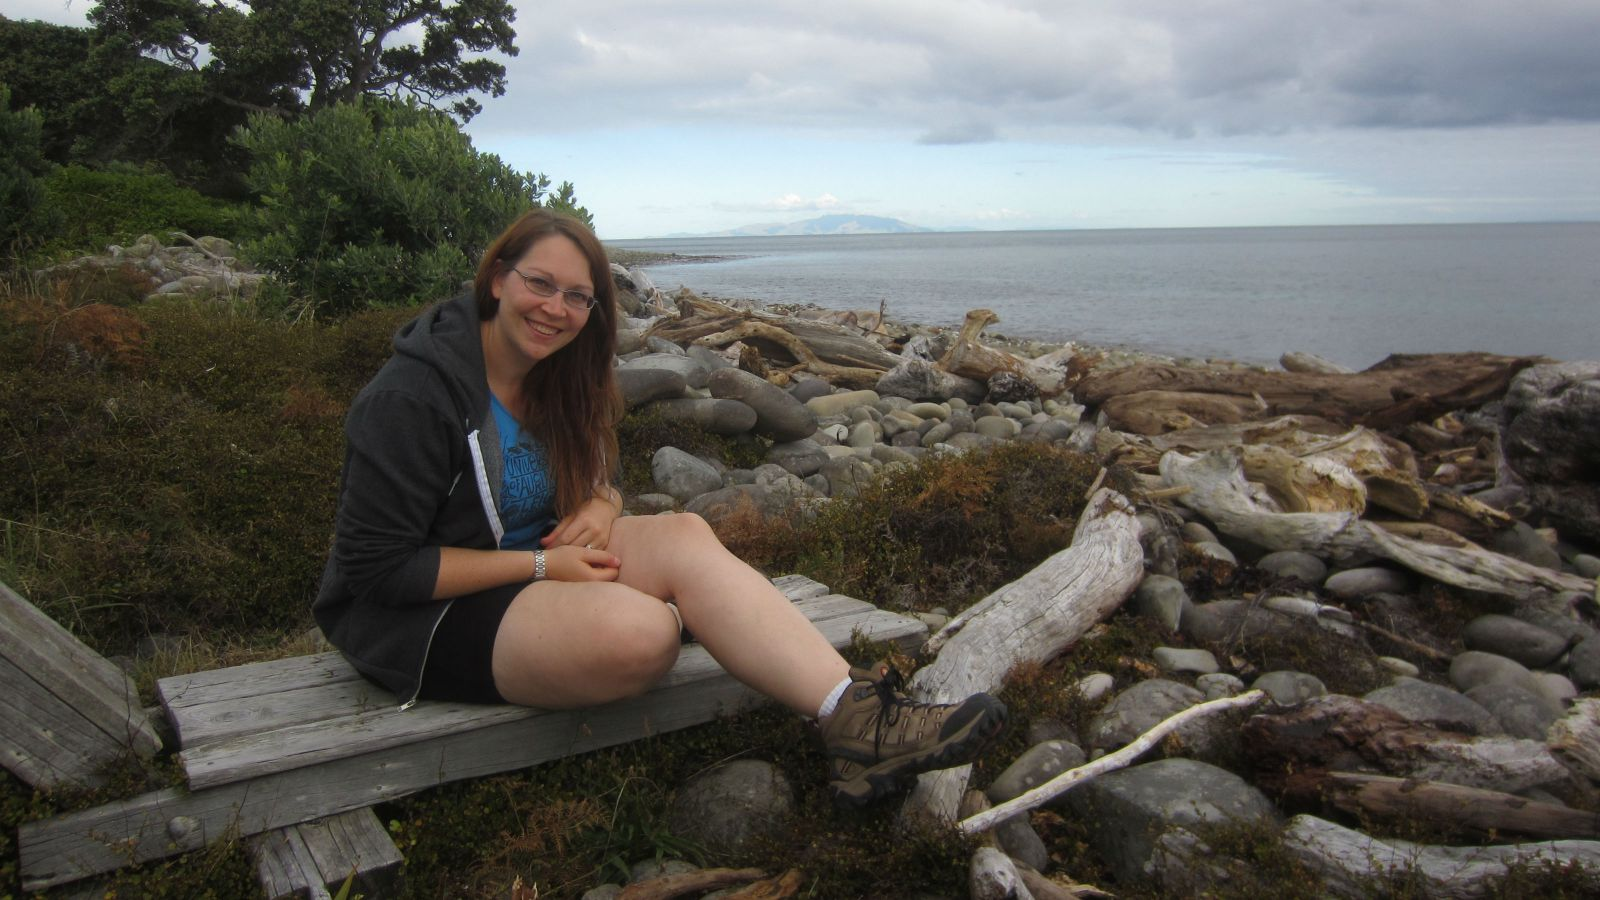 Katie sits on a wooden bench on a rocky beach with the ocean on one side and green vegetation on the other.